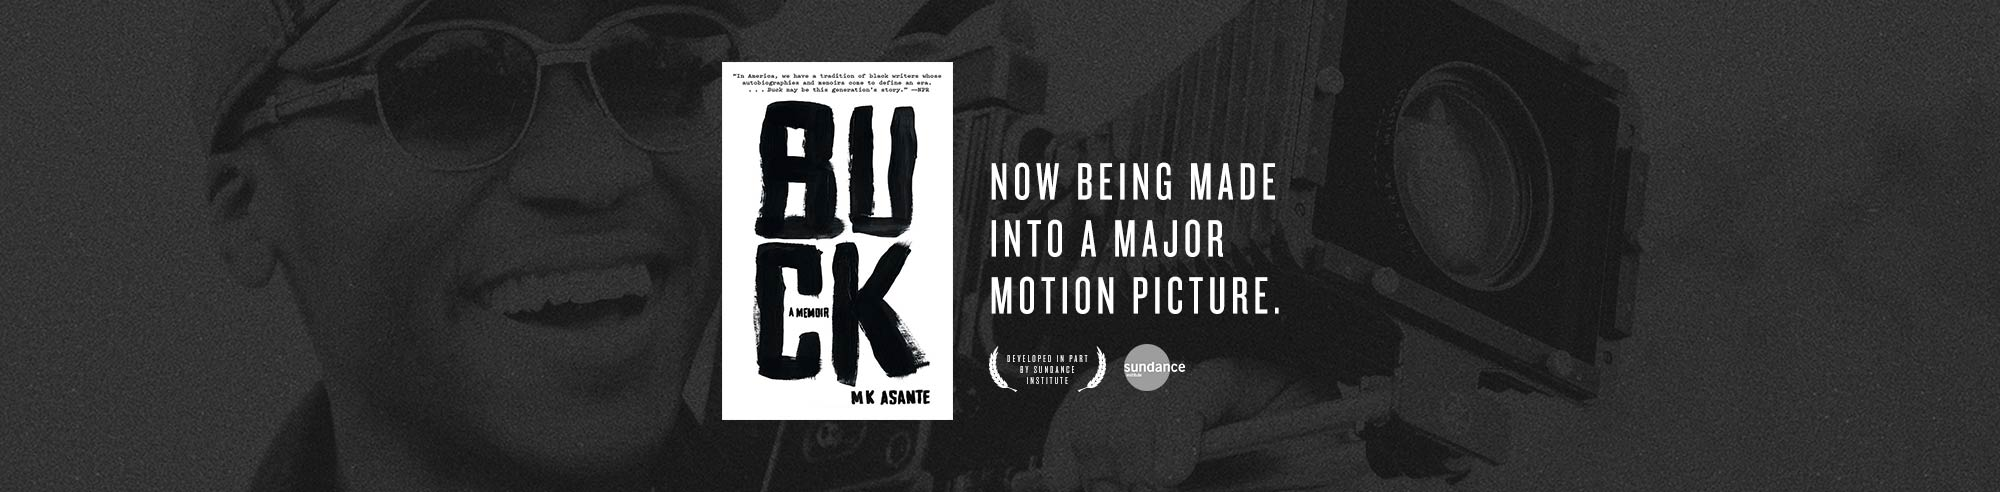 Buck - now being made into a major motion picture